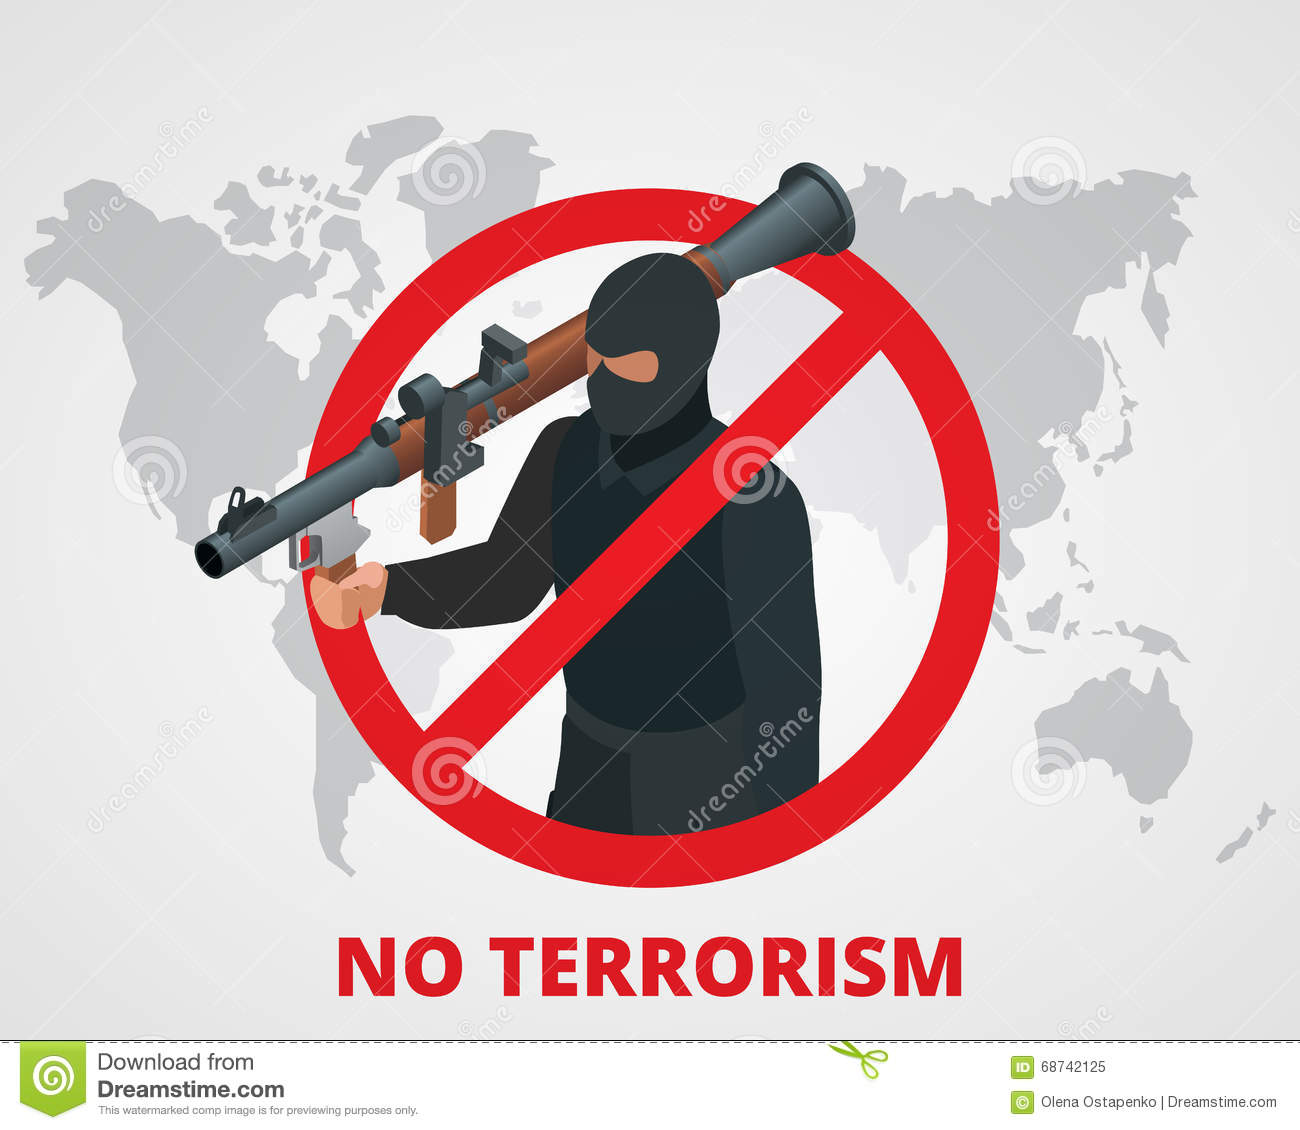 ... sign anti terrorism campaign badge on world map. Flat 3d illustration